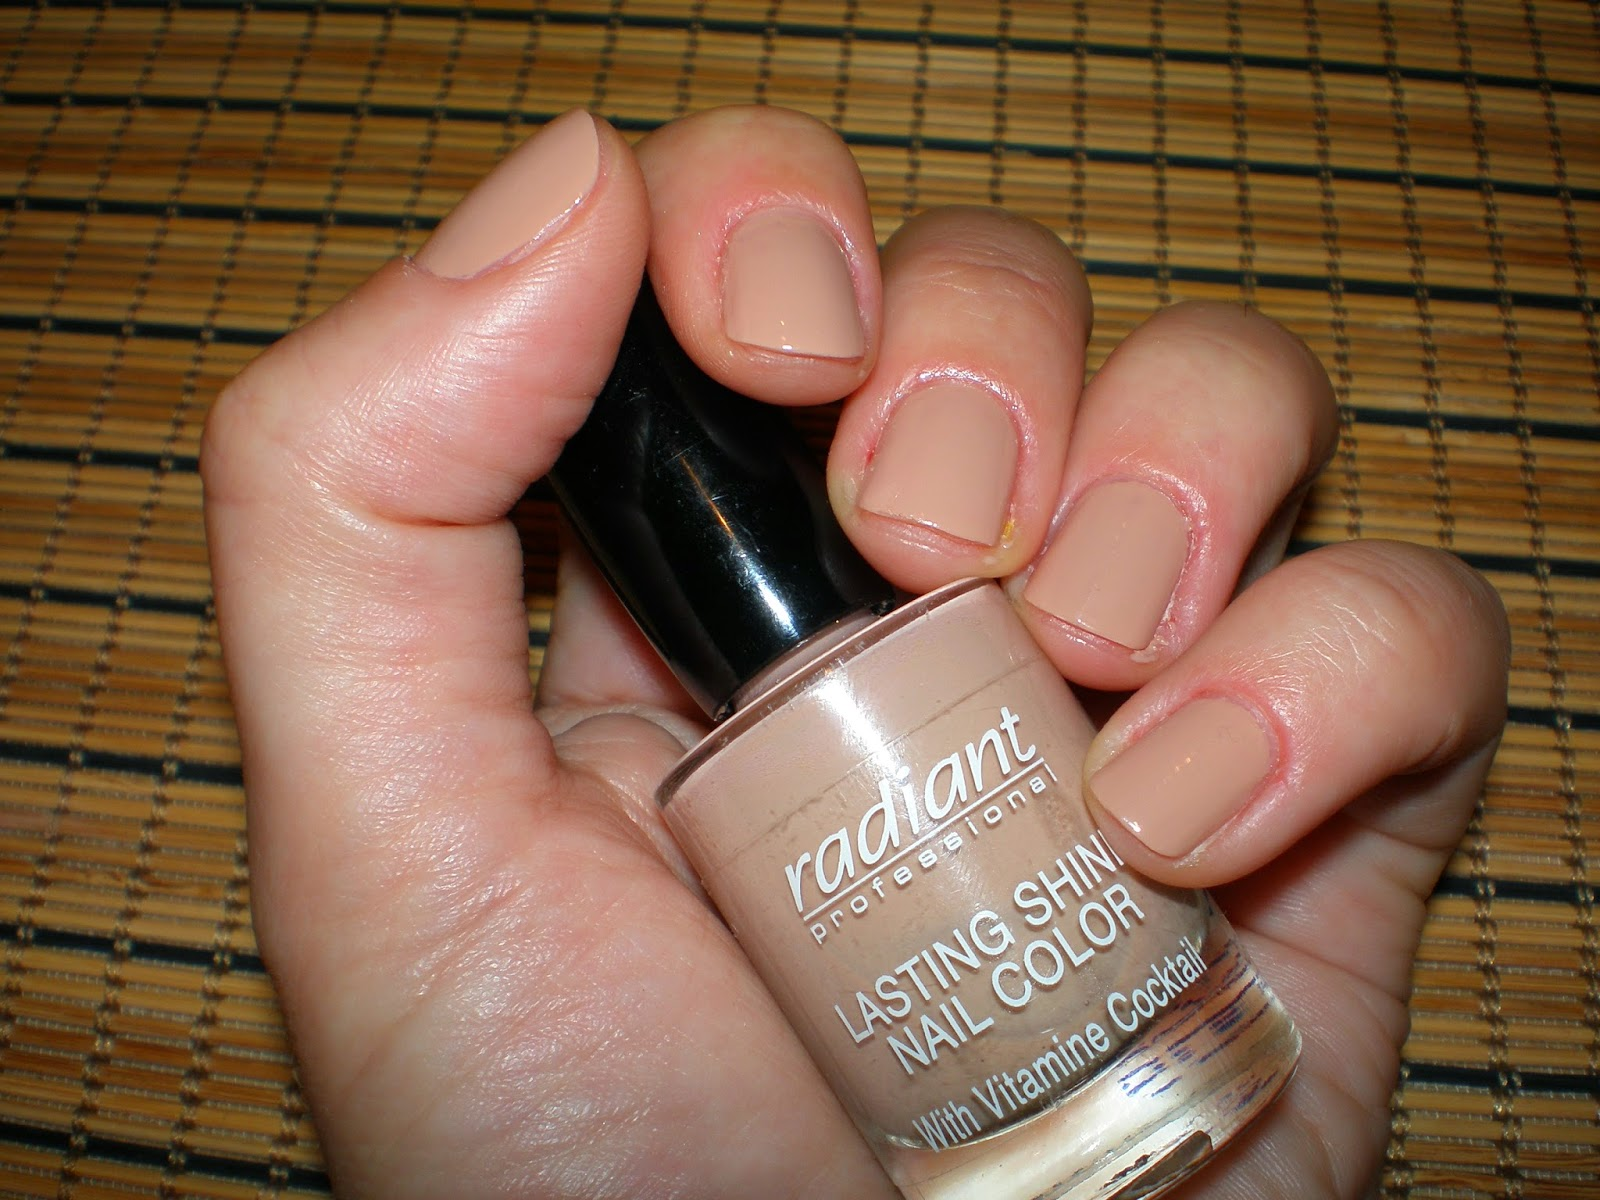 Radiant professionel lasting shine nail color, no 175